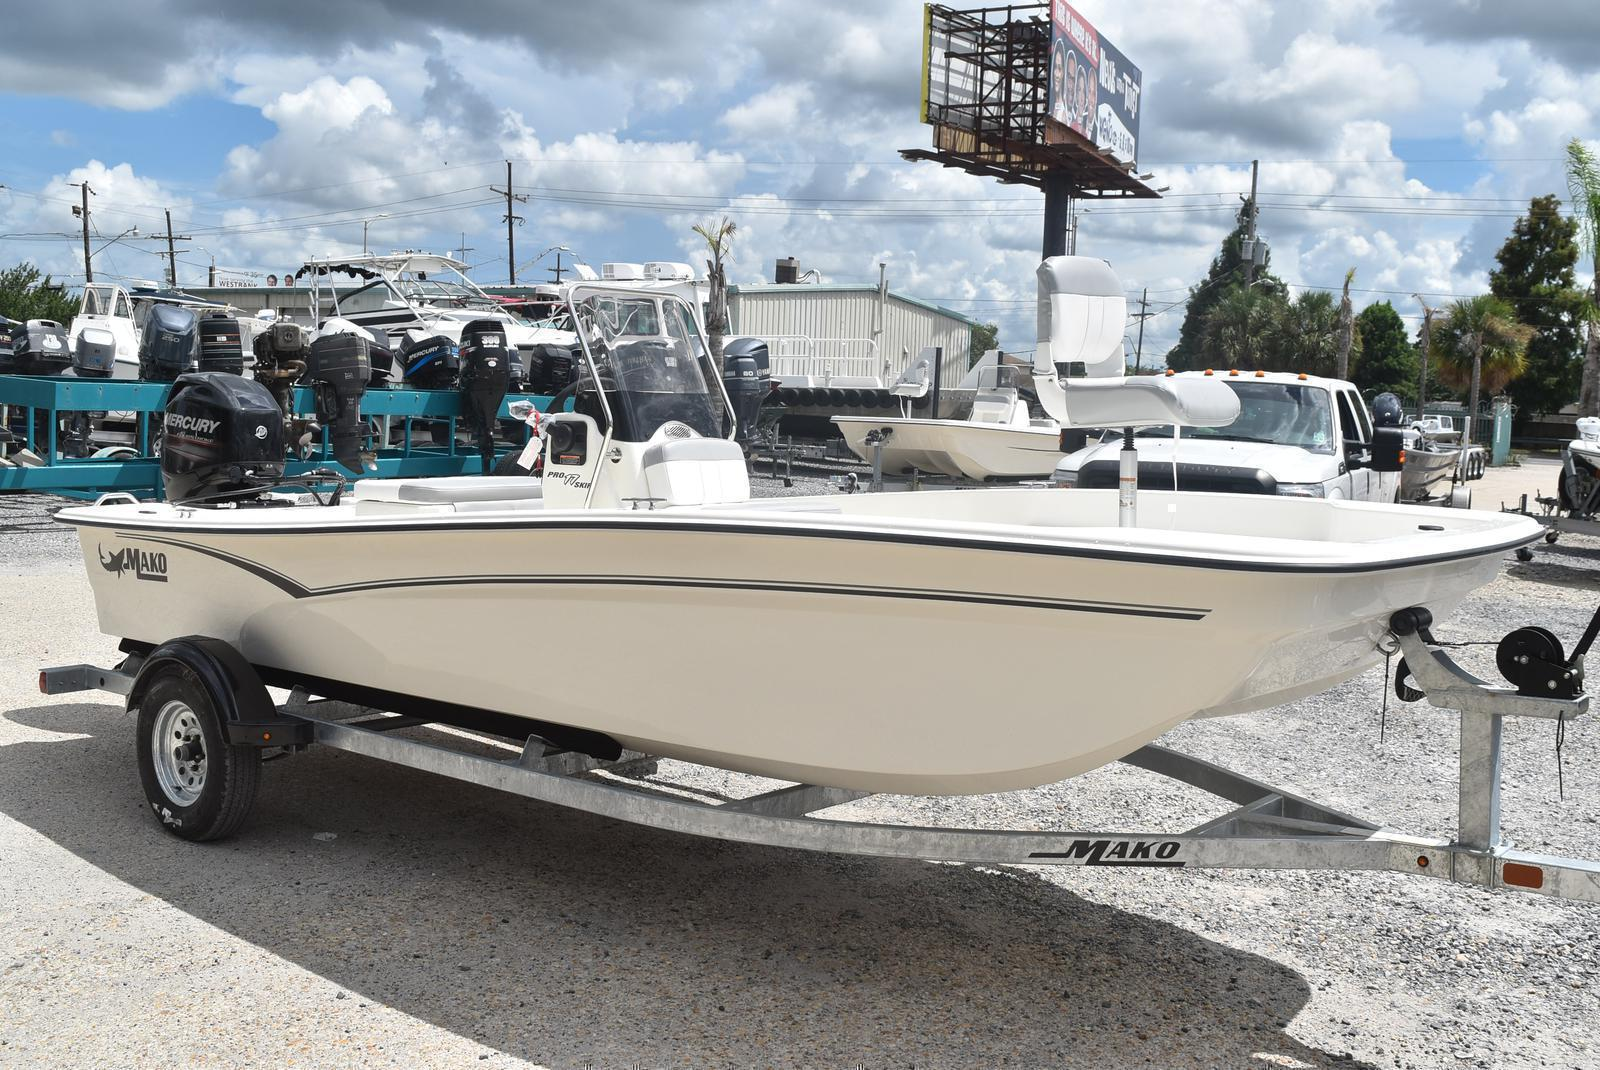 2020 Mako boat for sale, model of the boat is Pro Skiff 17, 75 ELPT & Image # 635 of 702